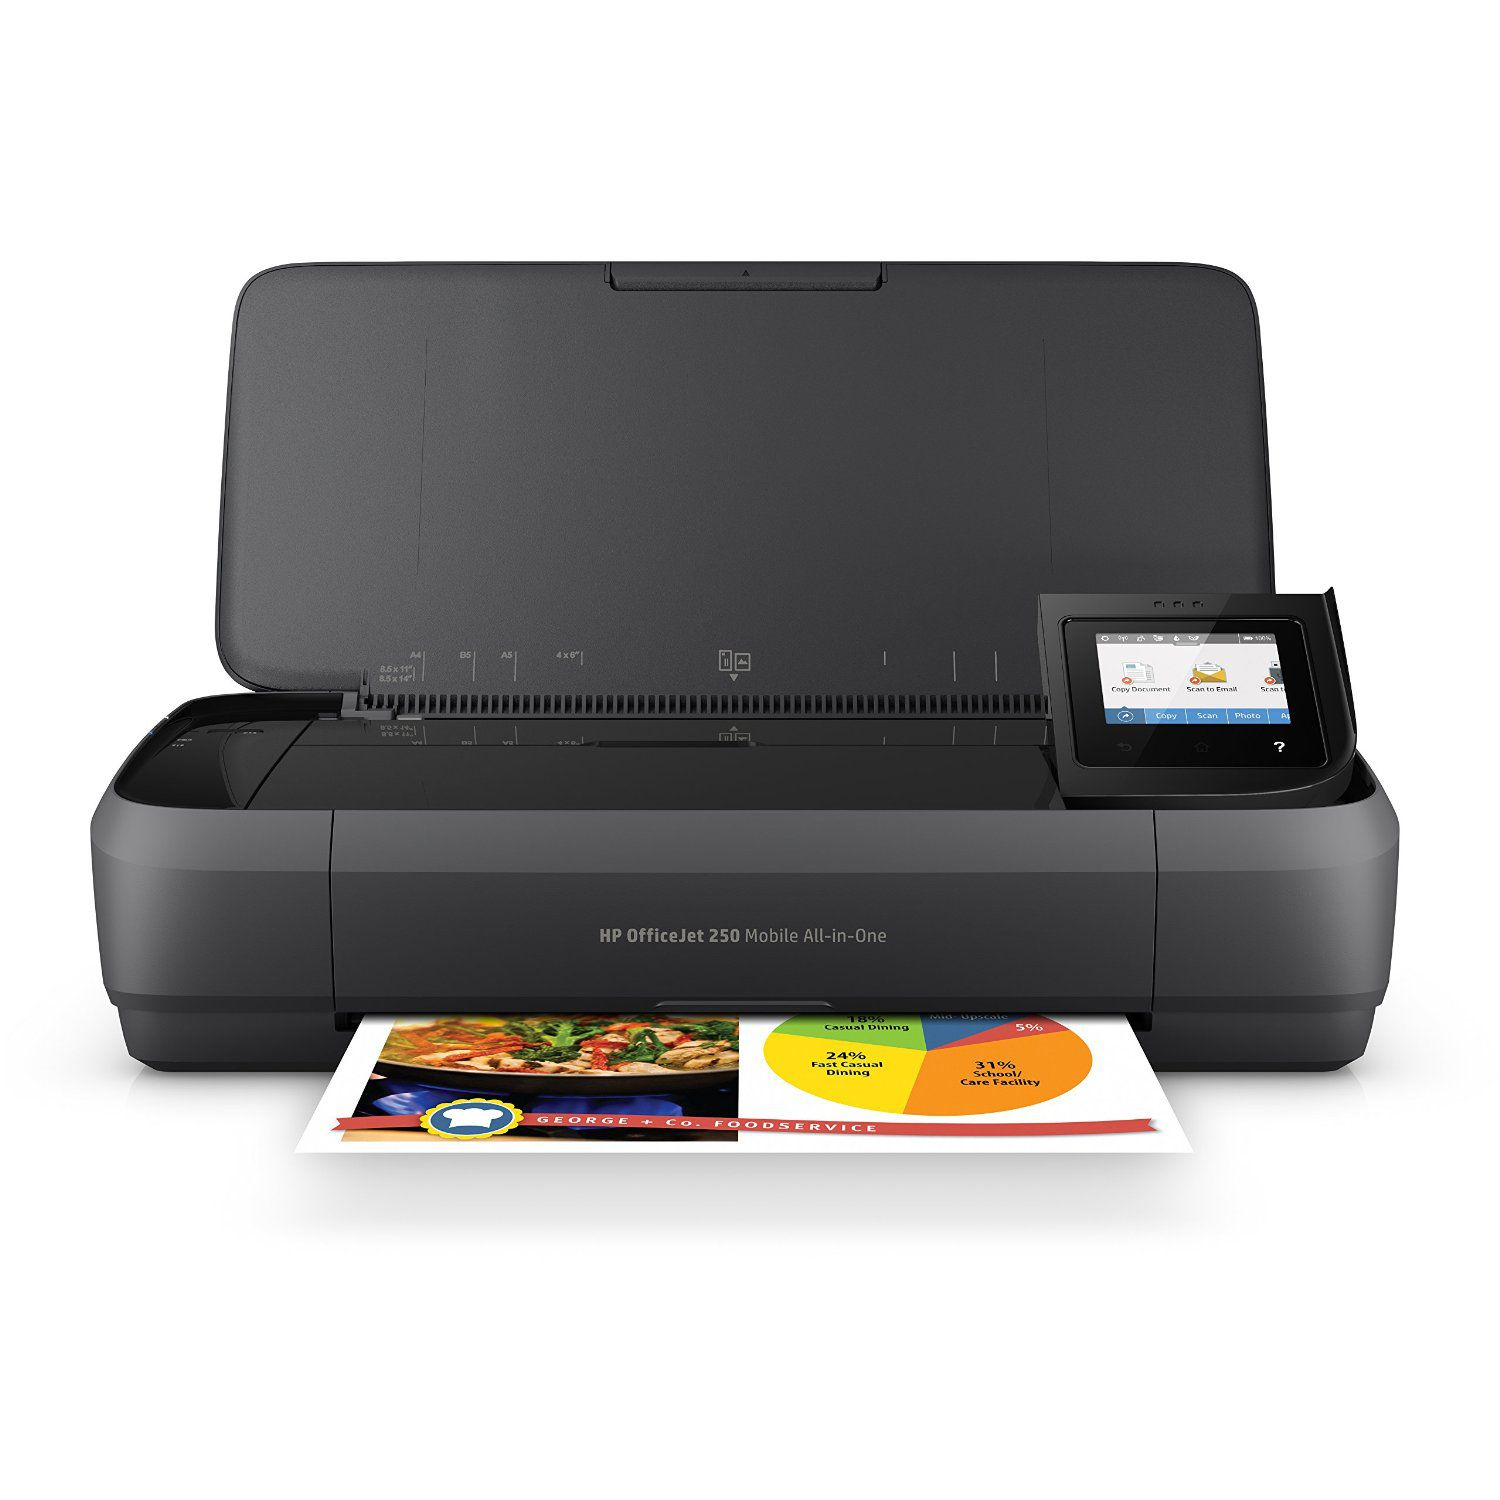 HPOfficeJet250All in OnePortablePrinterwithWirelessMobilePrinting 5953d87e5f9b584bfeaefb7a